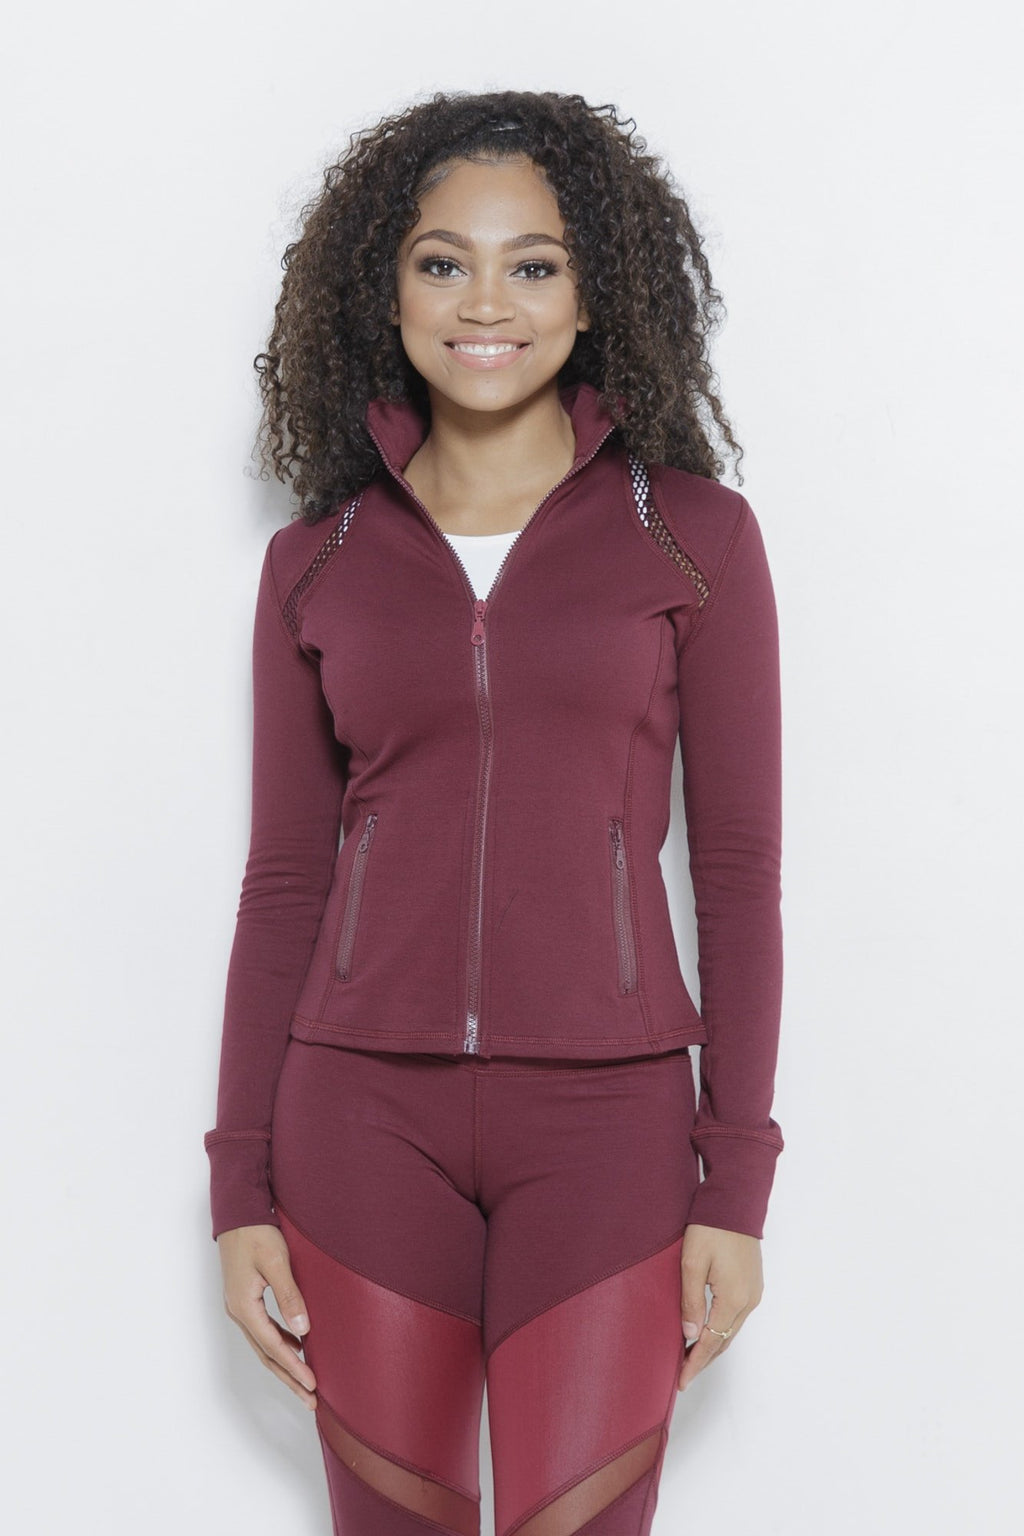 Netty for Sure Sports Jacket Clothing Fair Shade XS Wine 75% Cotton, 12% Rayon, 13% Spandex